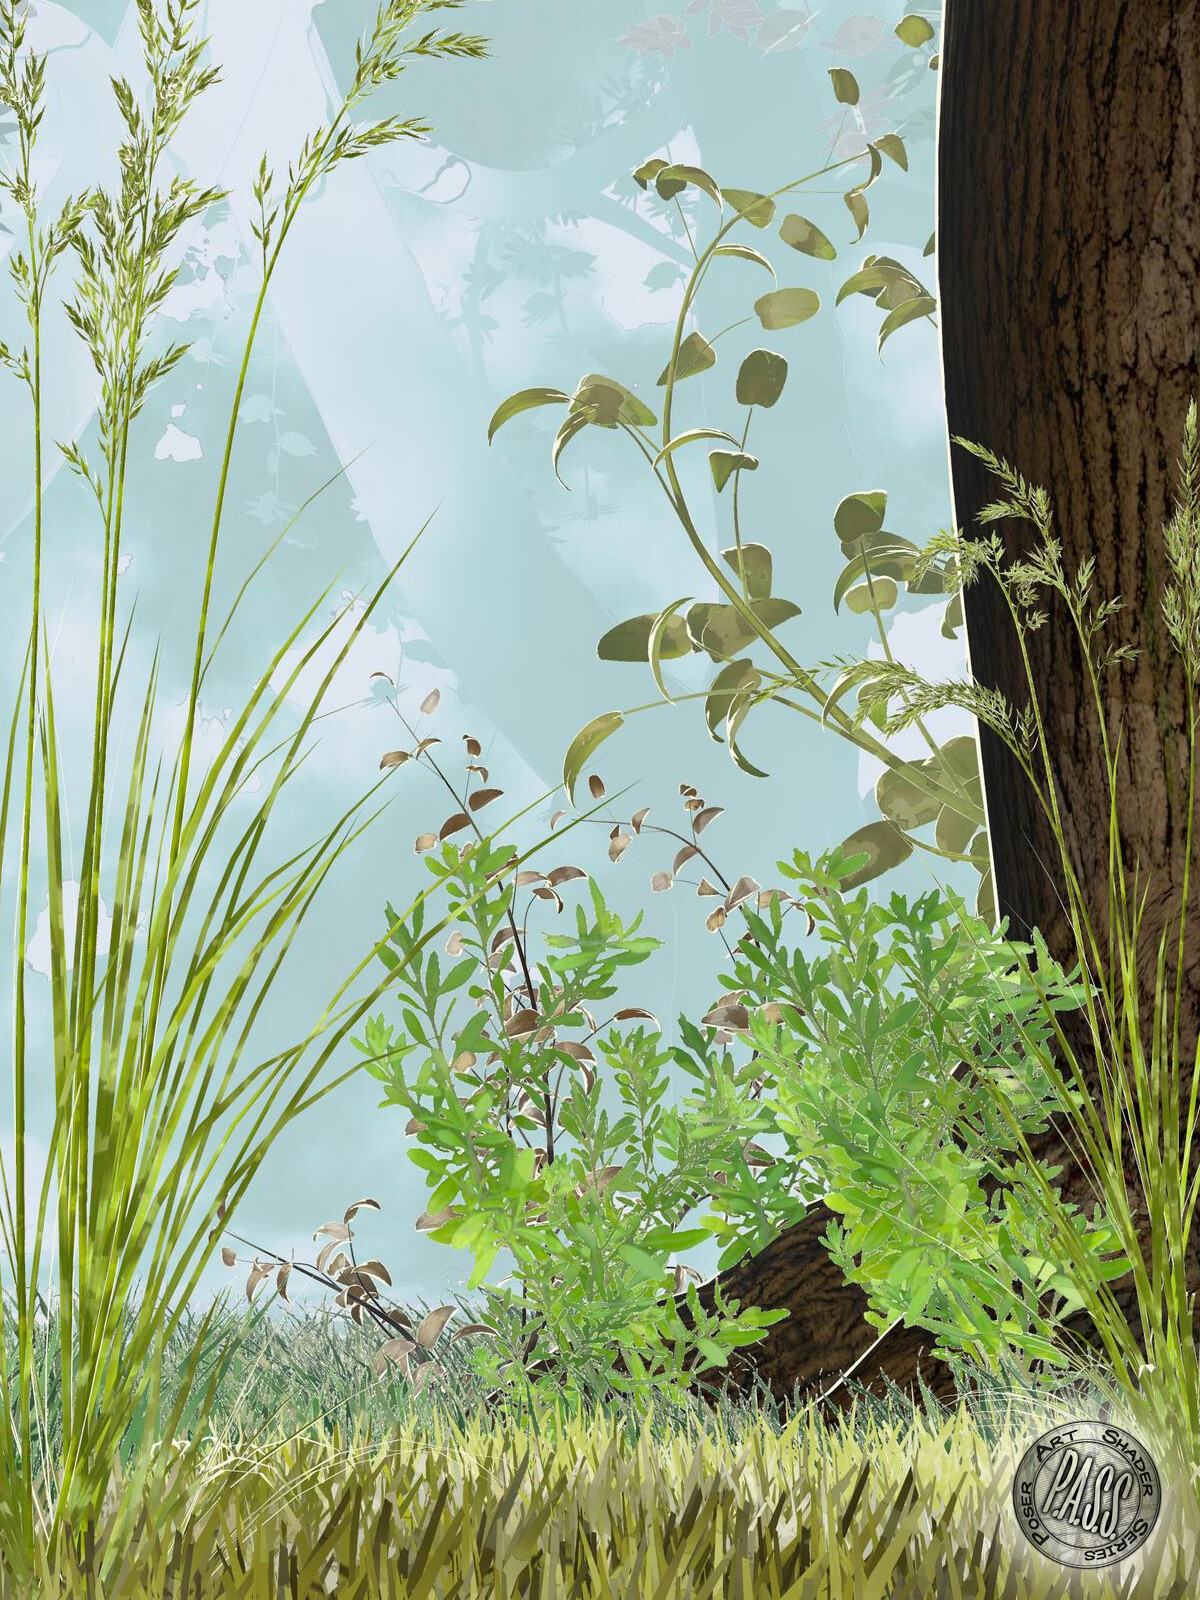 An example of large and small foliage shaders, as well as the depth cue backgrounds.